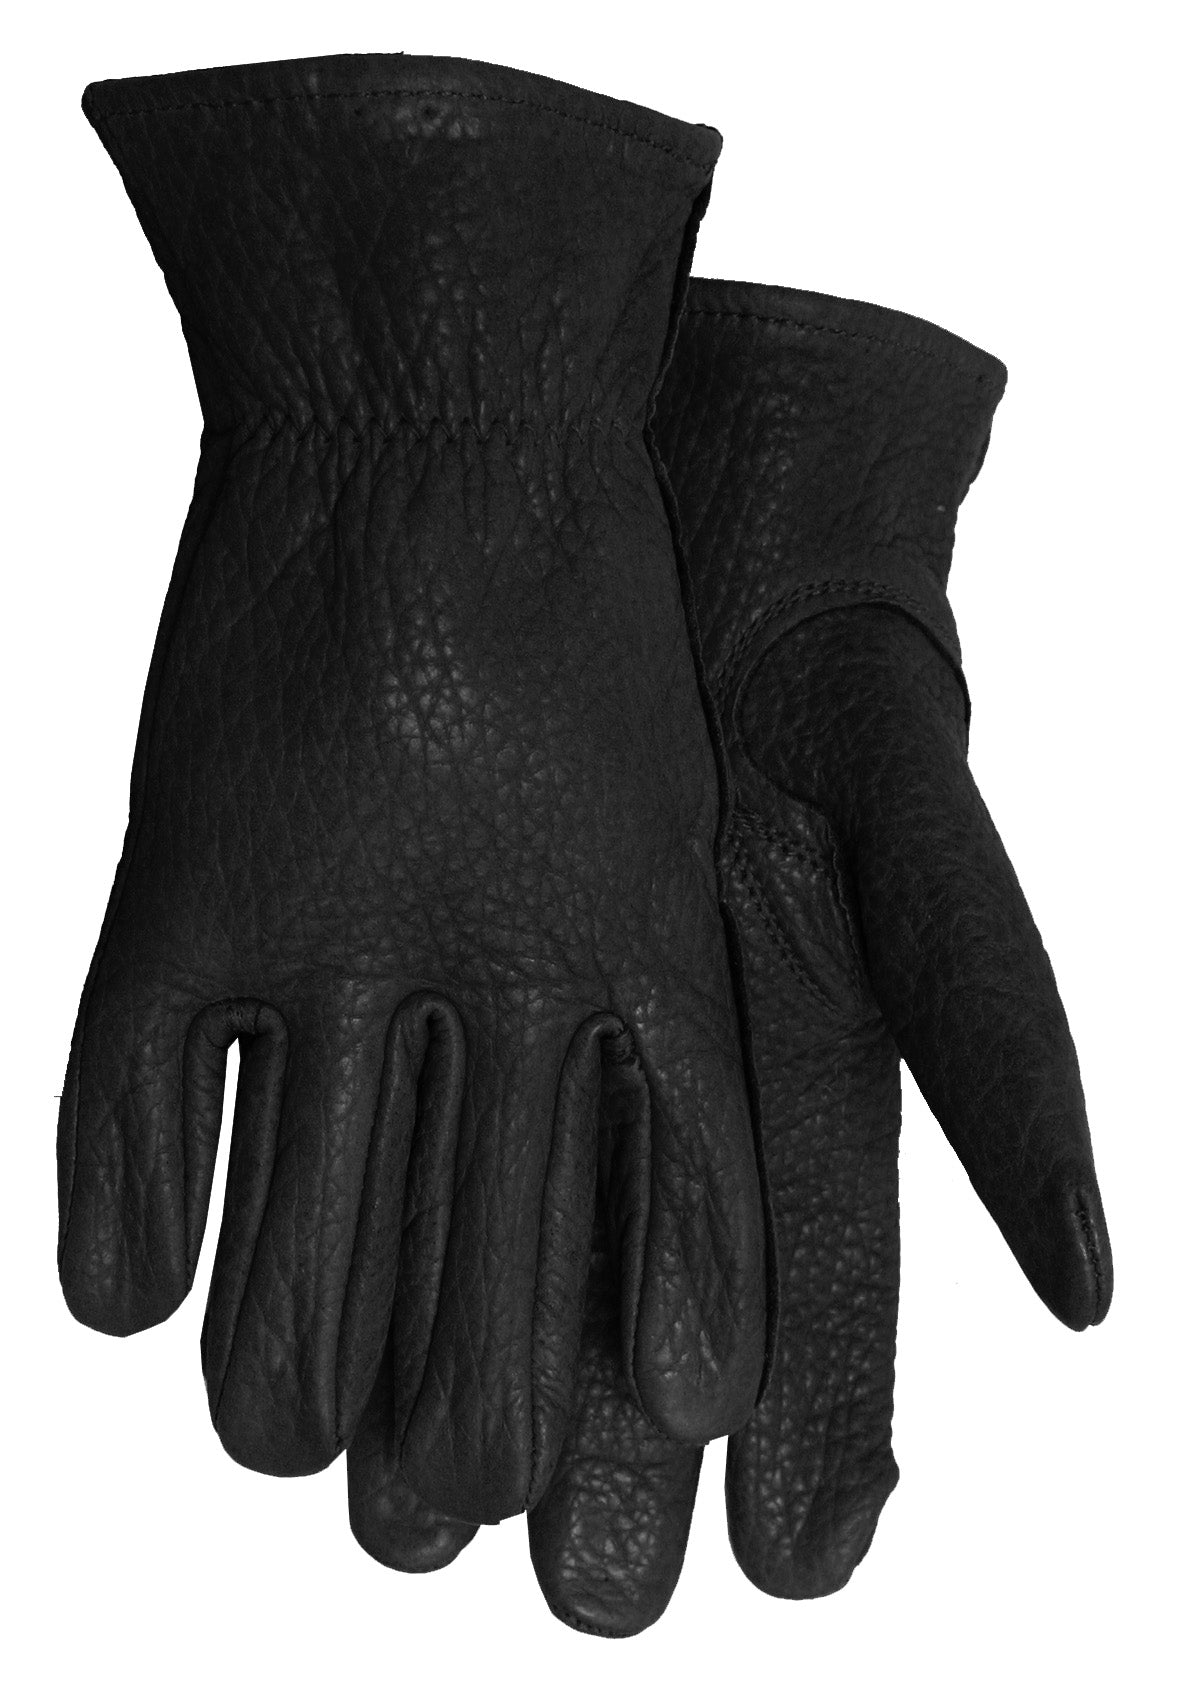 Midwest Glove - Black(ish) bison leather work glove